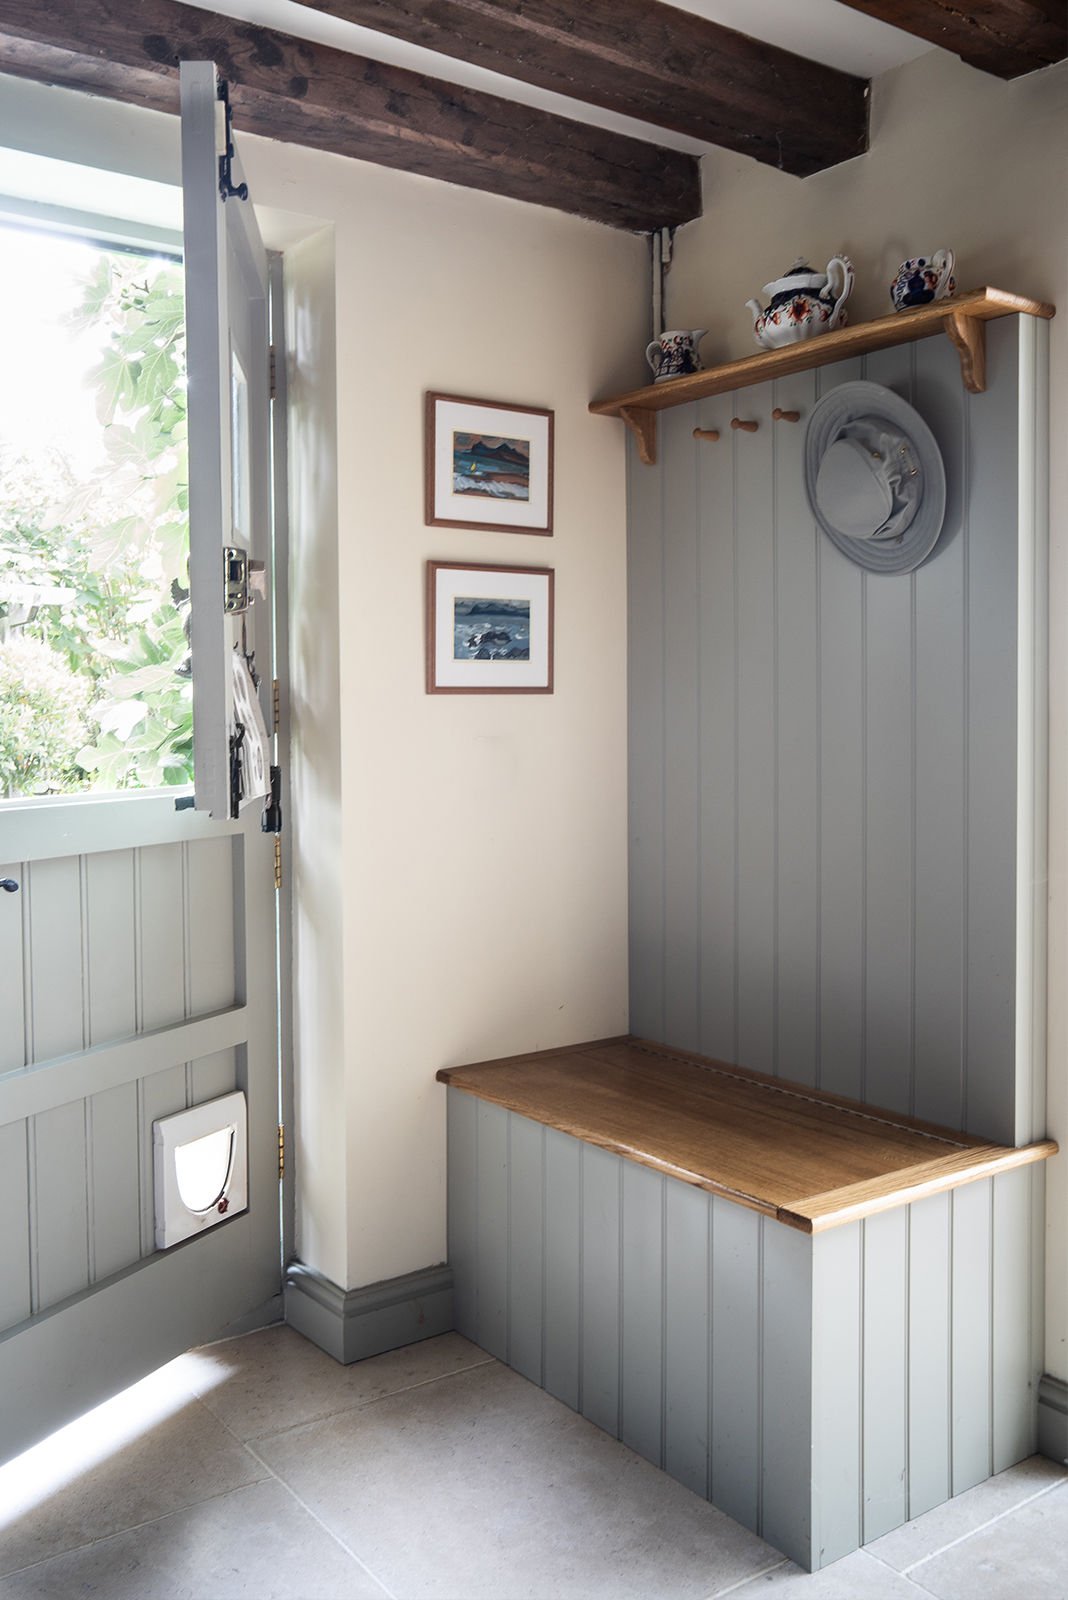 Cottage Kitchen - Door.jpg